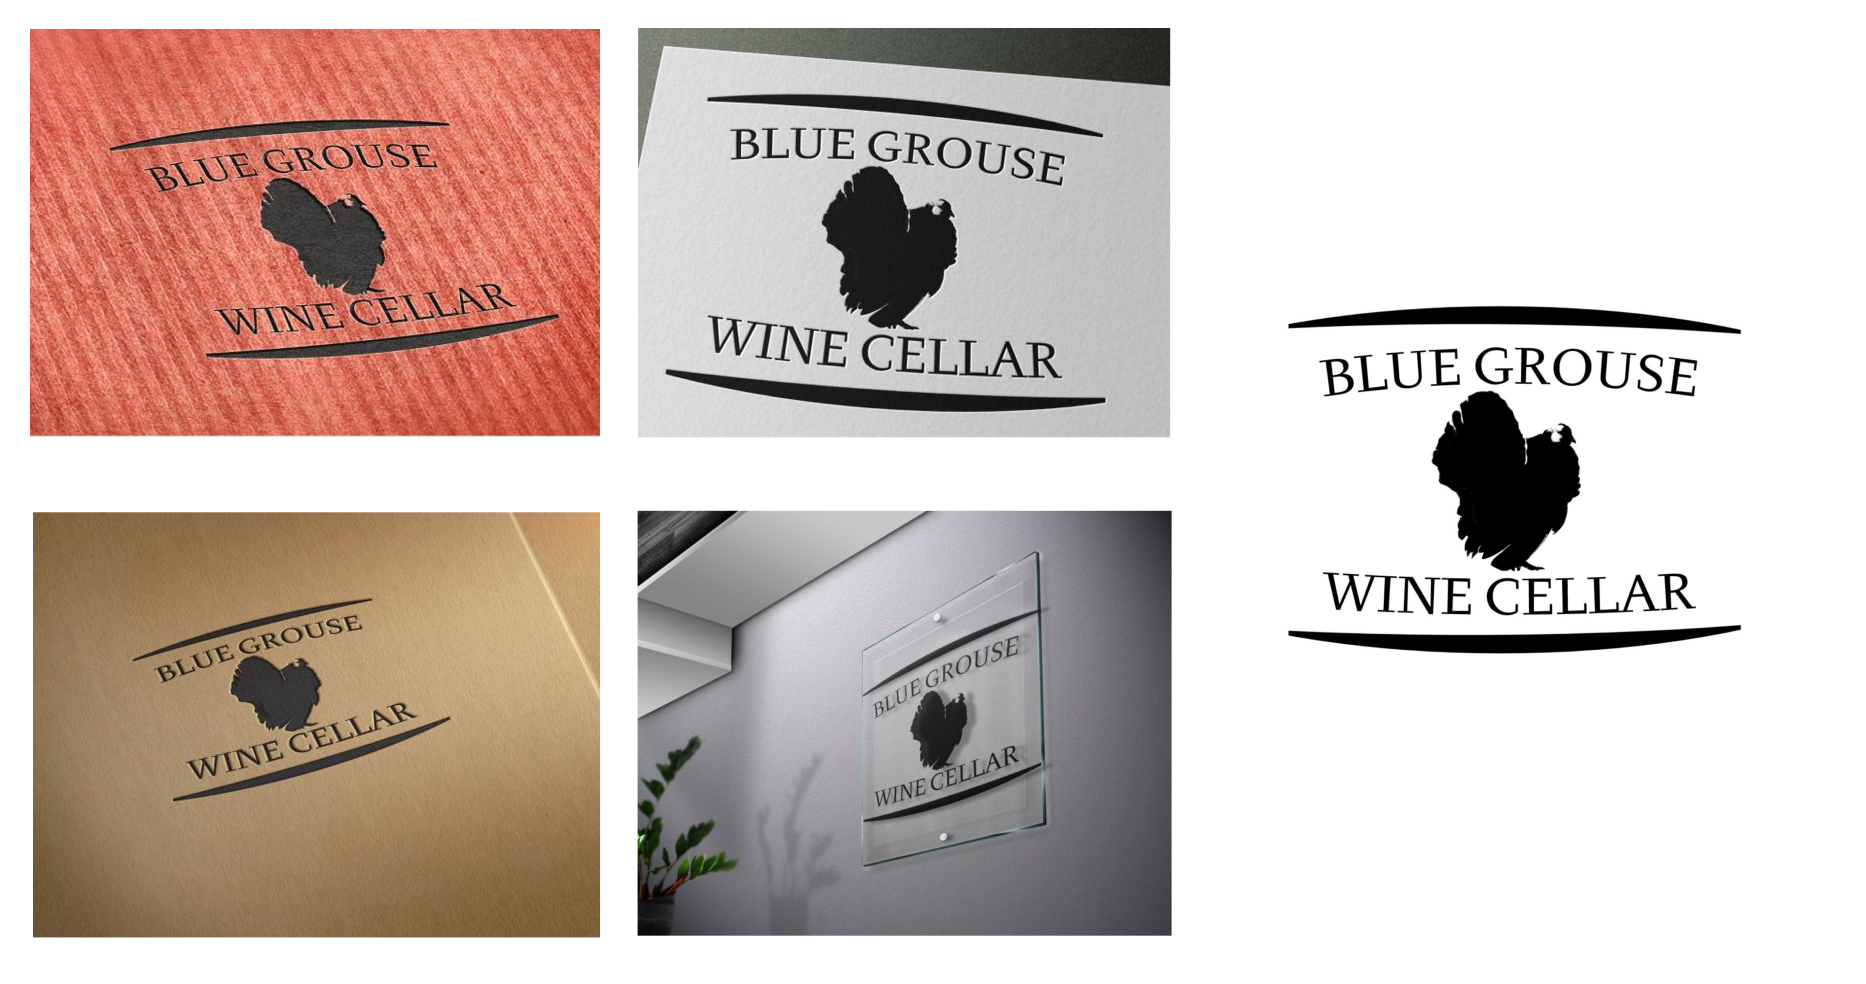 Logo Design by Banciu Daniel - Entry No. 166 in the Logo Design Contest Creative Logo Design for Blue Grouse Wine Cellars.